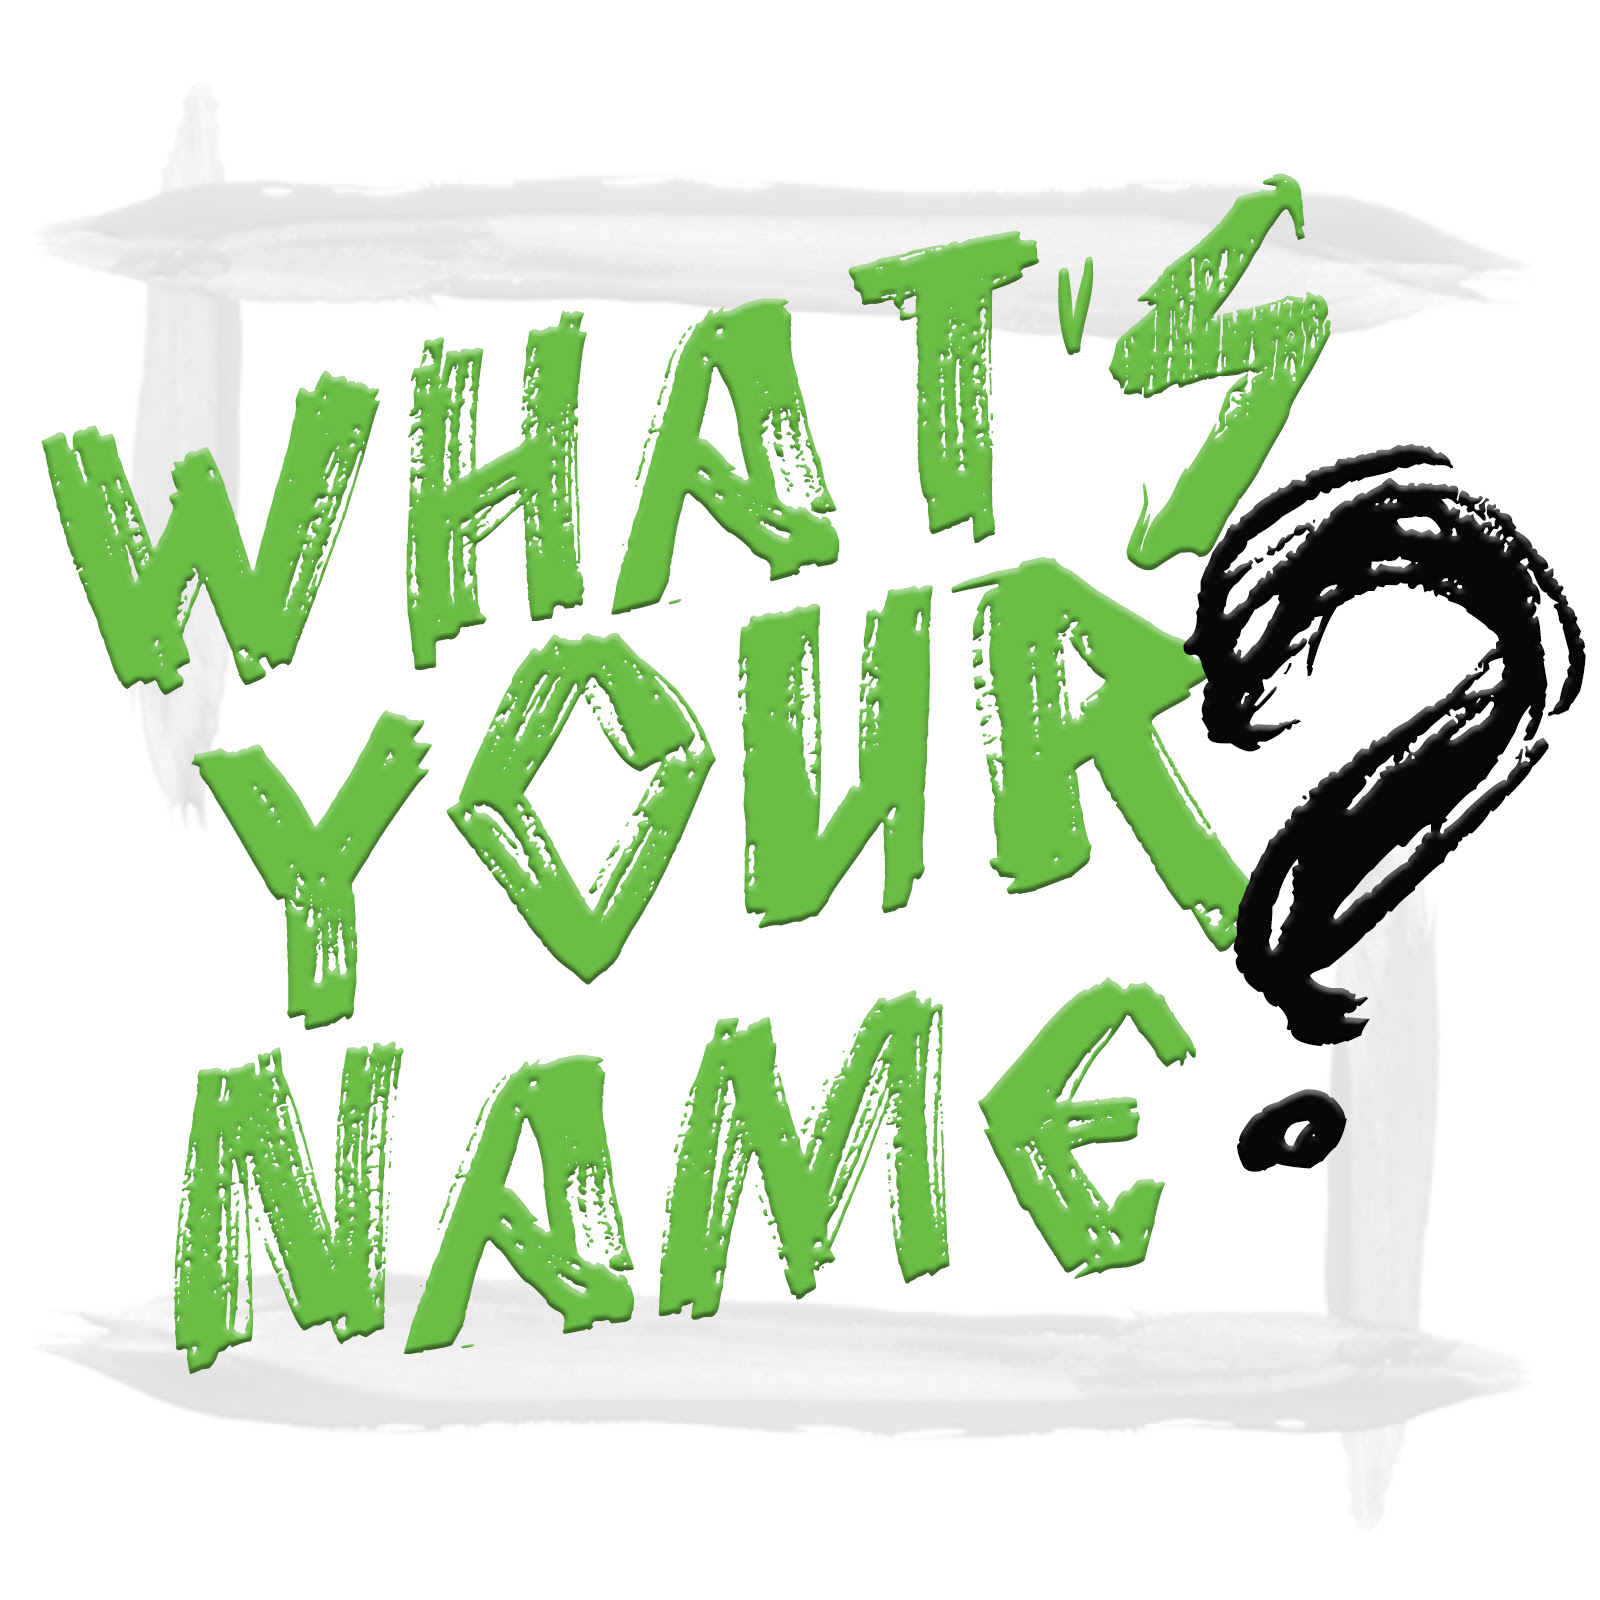 whats your name - eve center